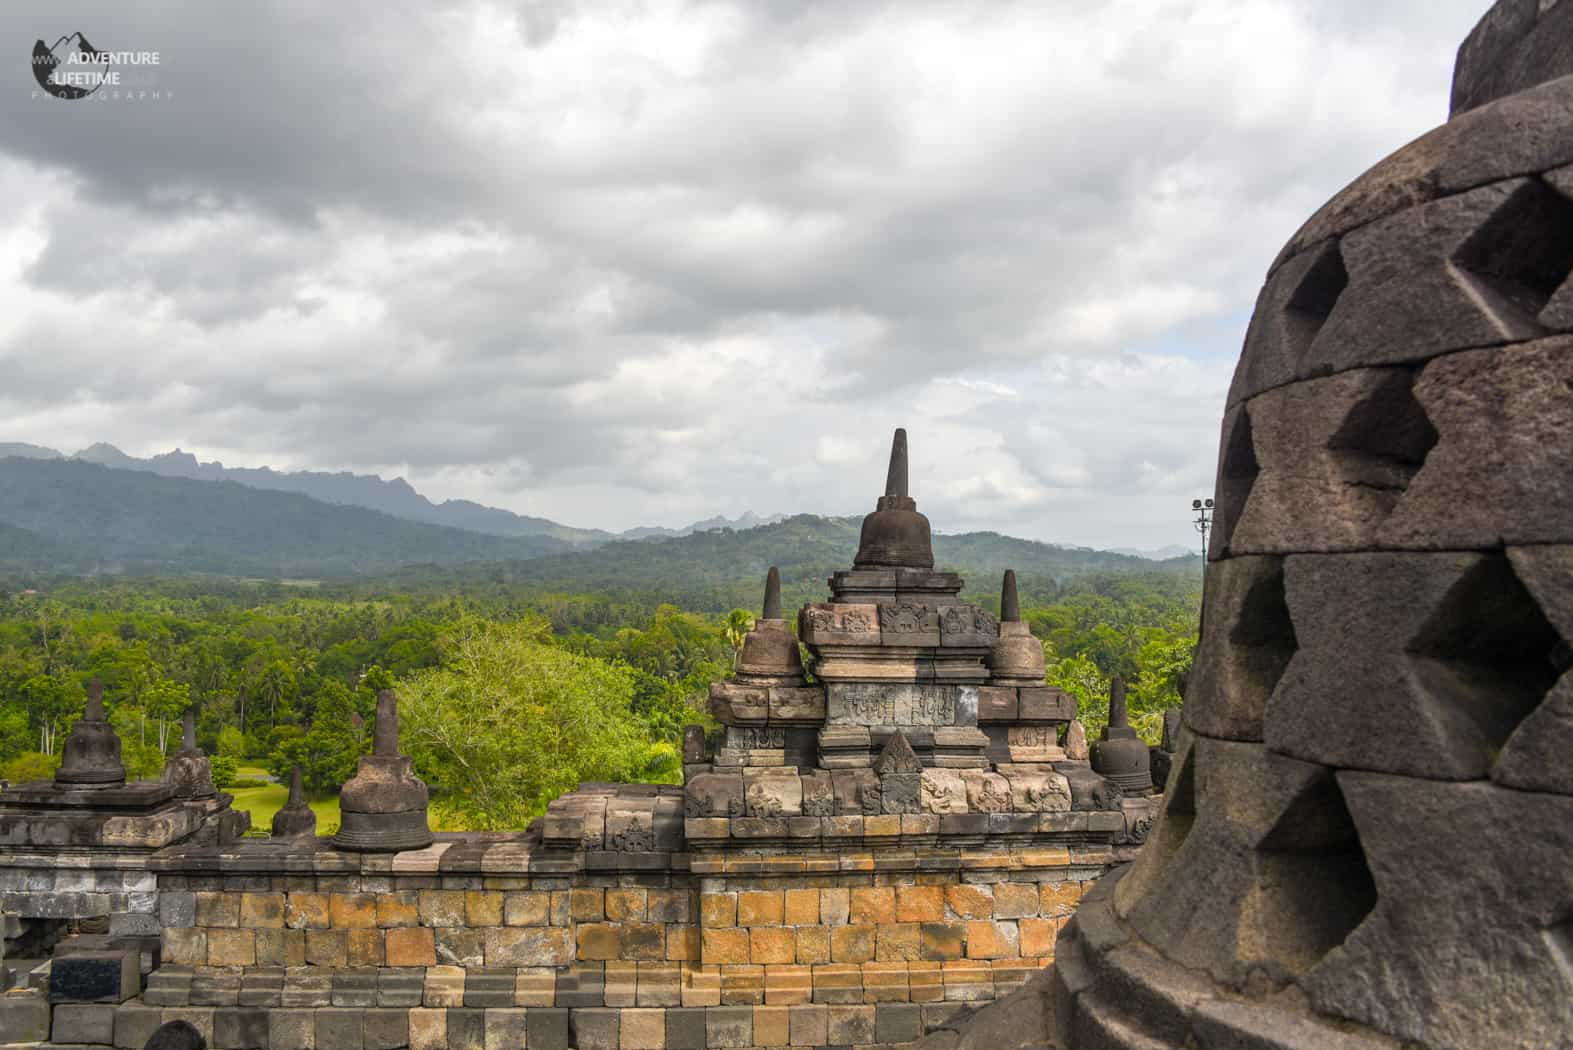 Contrast between Borobudur temple and the jungle